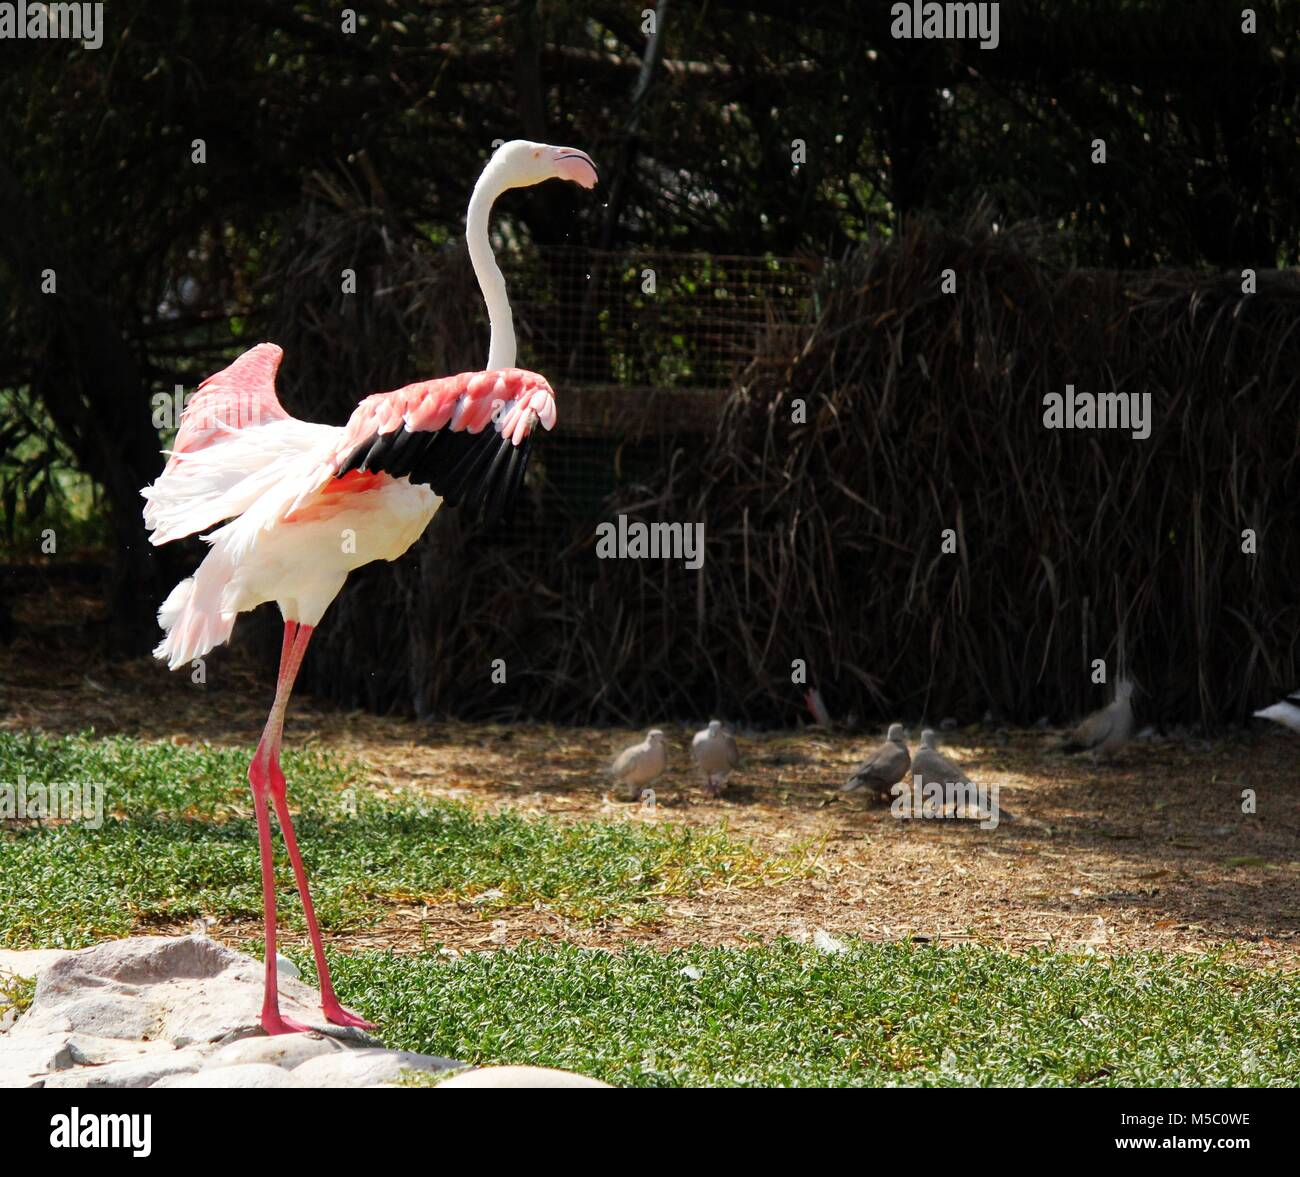 The greater flamingo is the most widespread species of the flamingo family. It is found in Africa, on the Indian subcontinent, in the Middle East & SA. Stock Photo